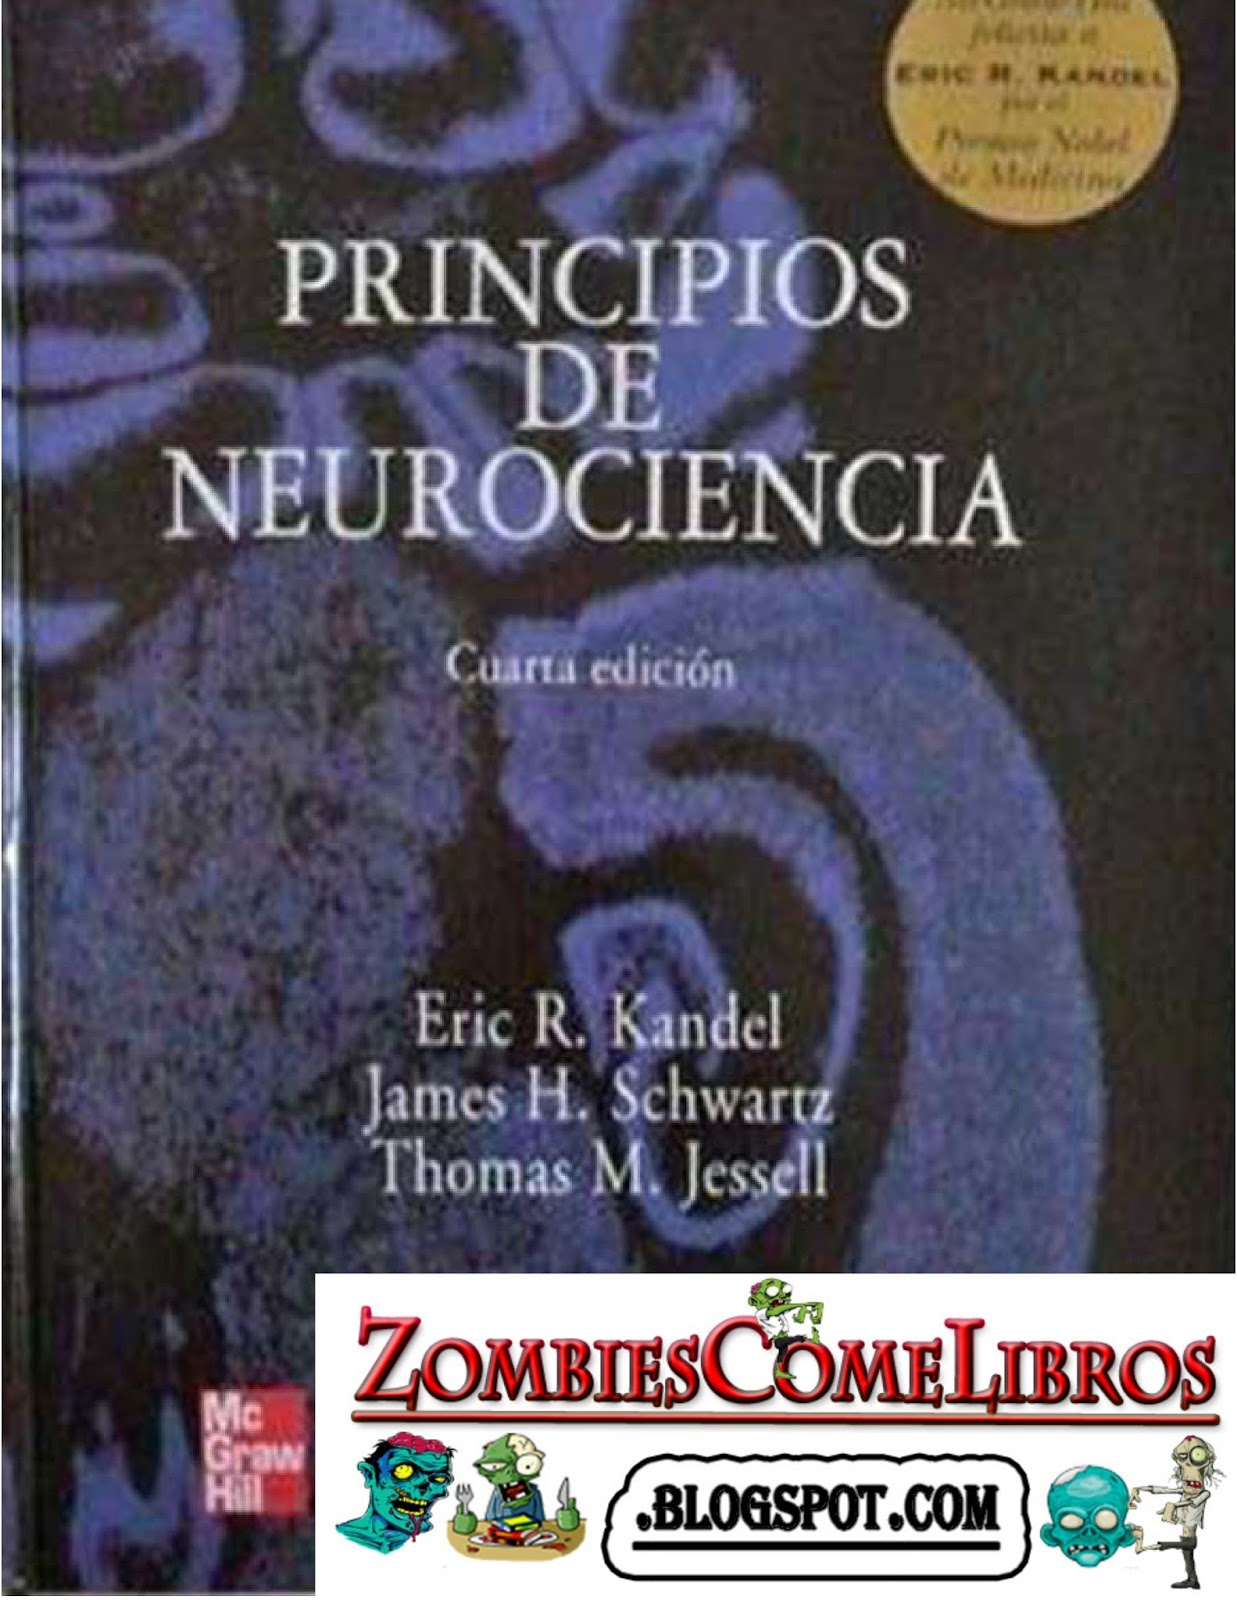 Descargar Libros Kelly Dreams Libro Principios De Neurociencia Eric Kandel